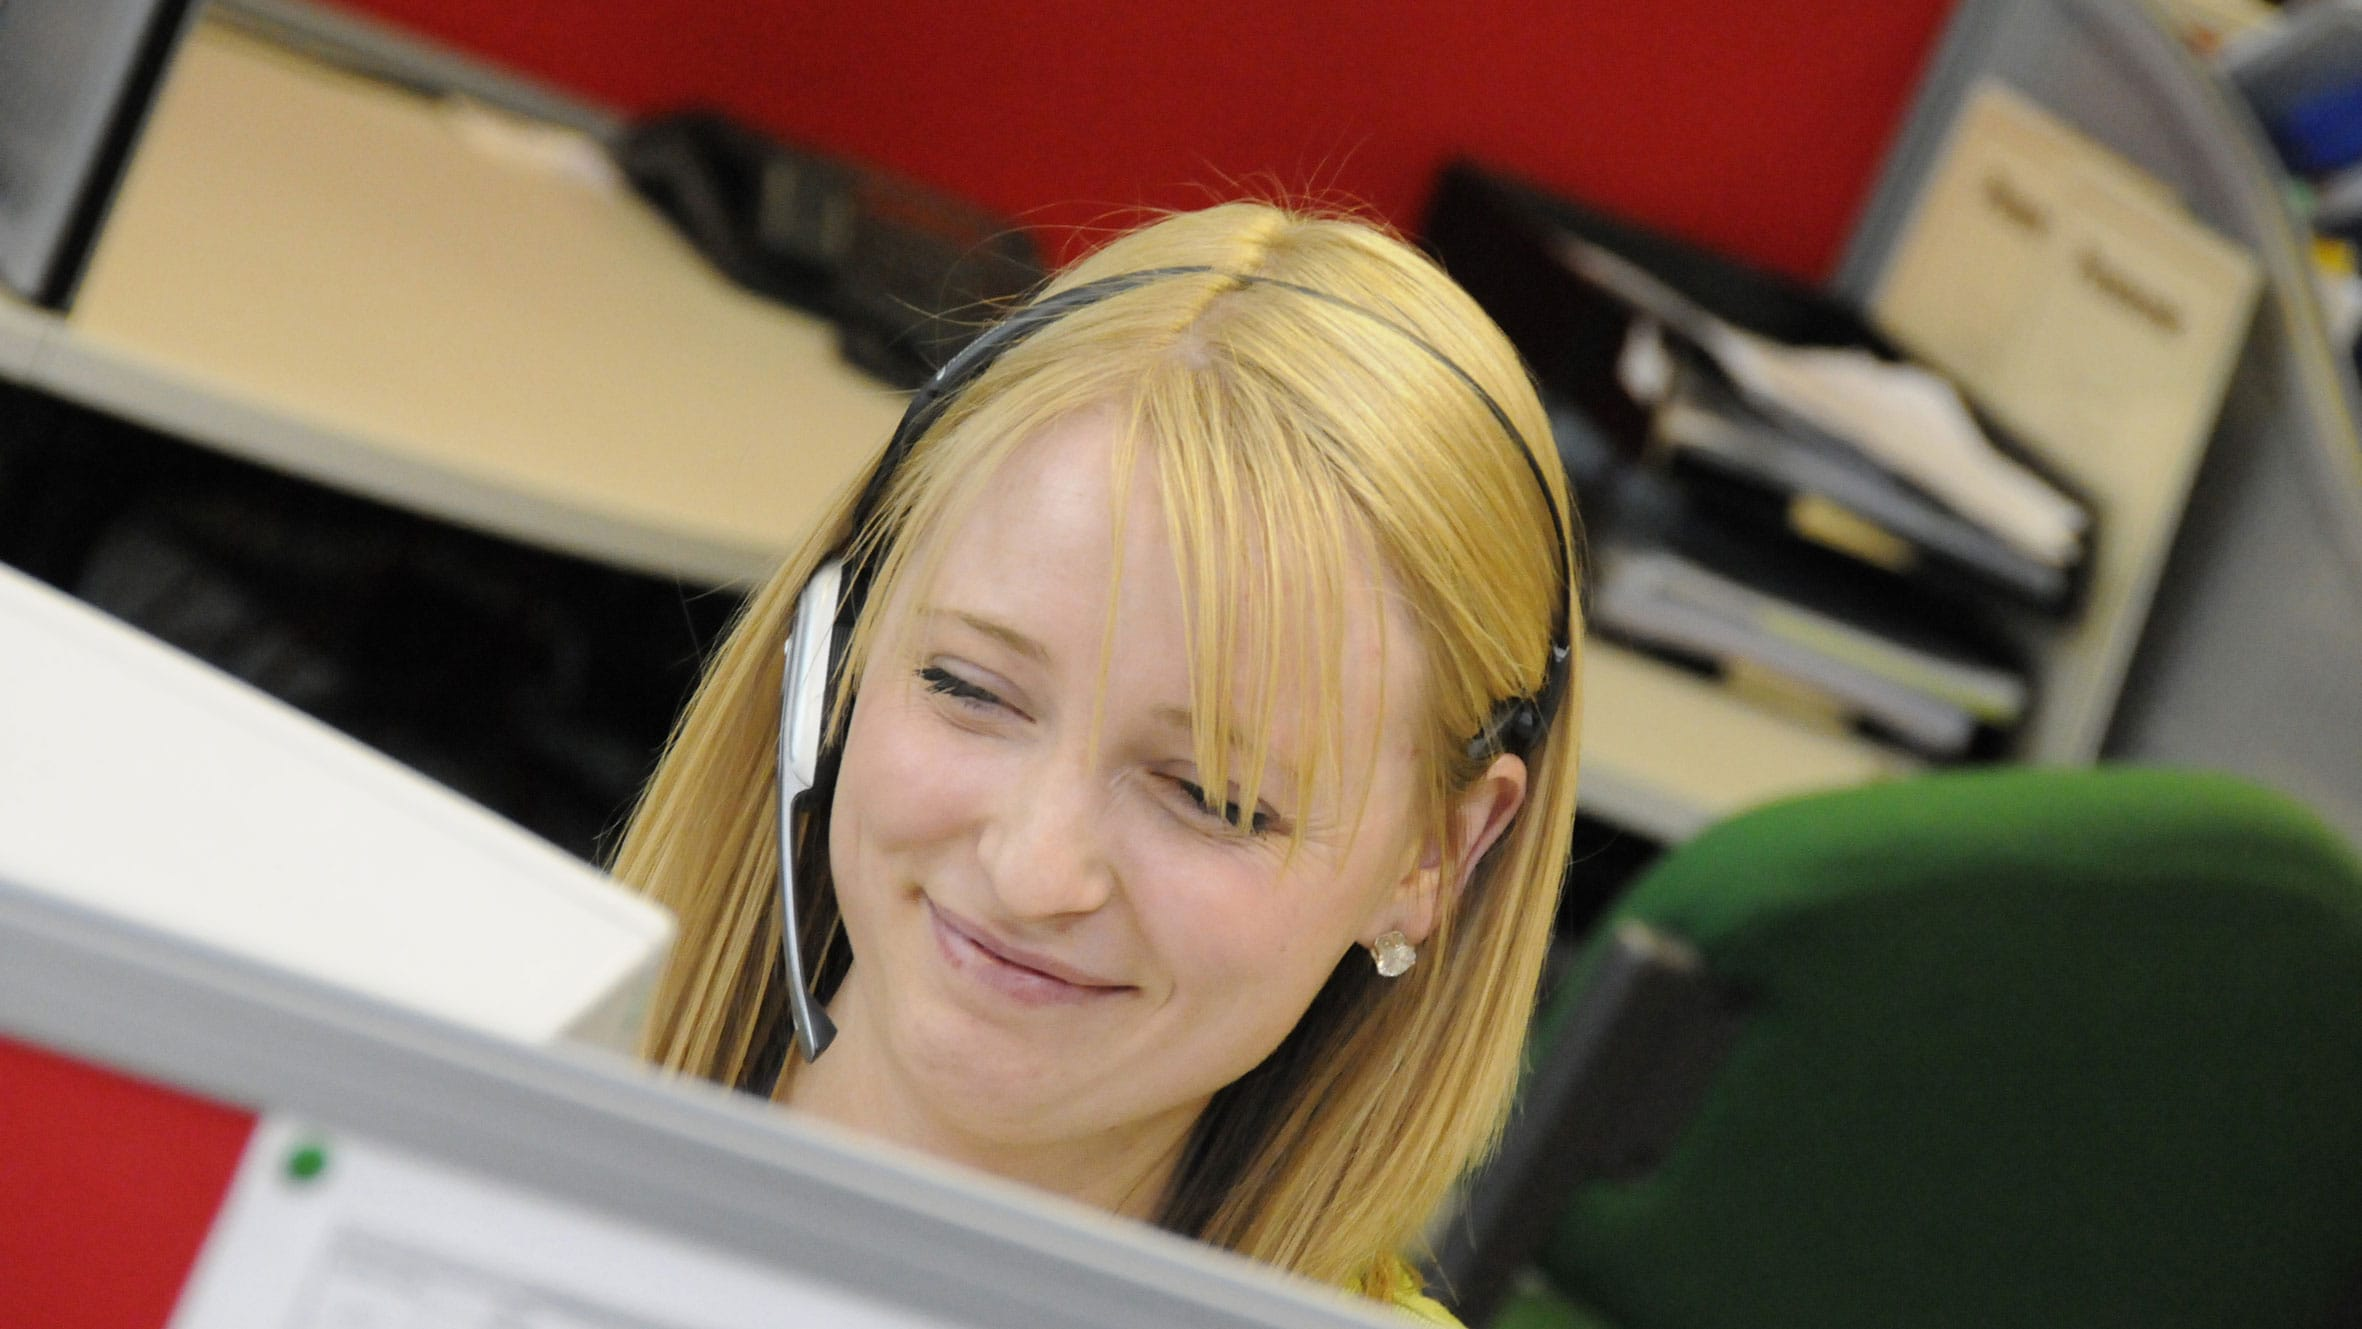 A call-centre employee